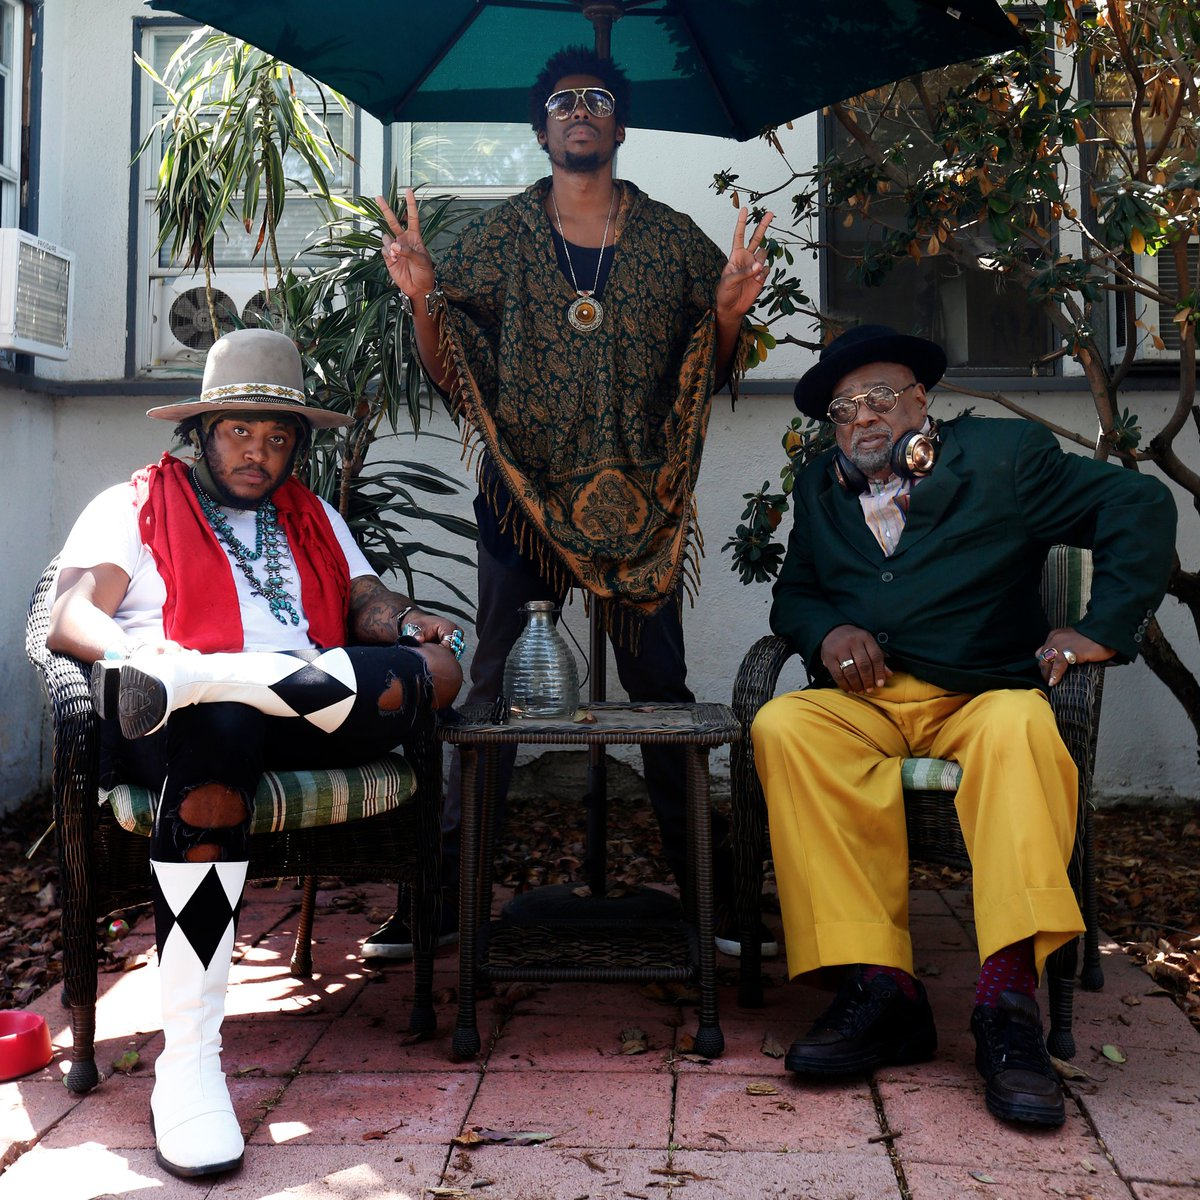 immensely dope photo of @Thundercat @flyinglotus @george_clinton https://t.co/BVuSStSaab